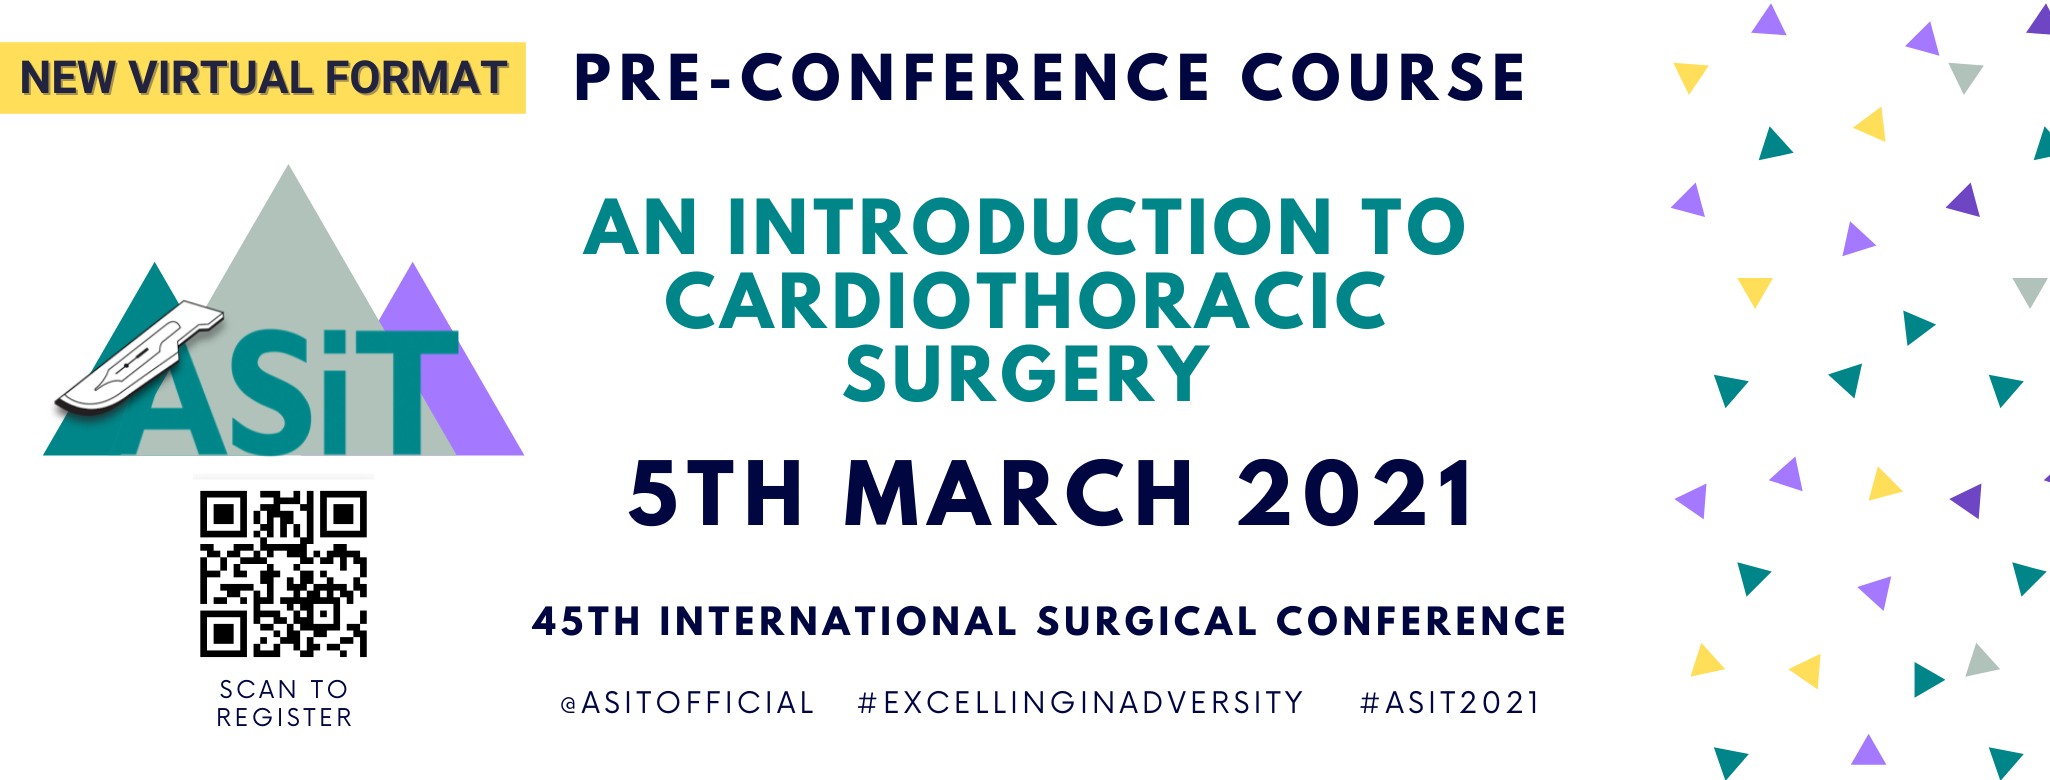 Introduction to Cardiothoracic Surgery: Pre-Conference Course